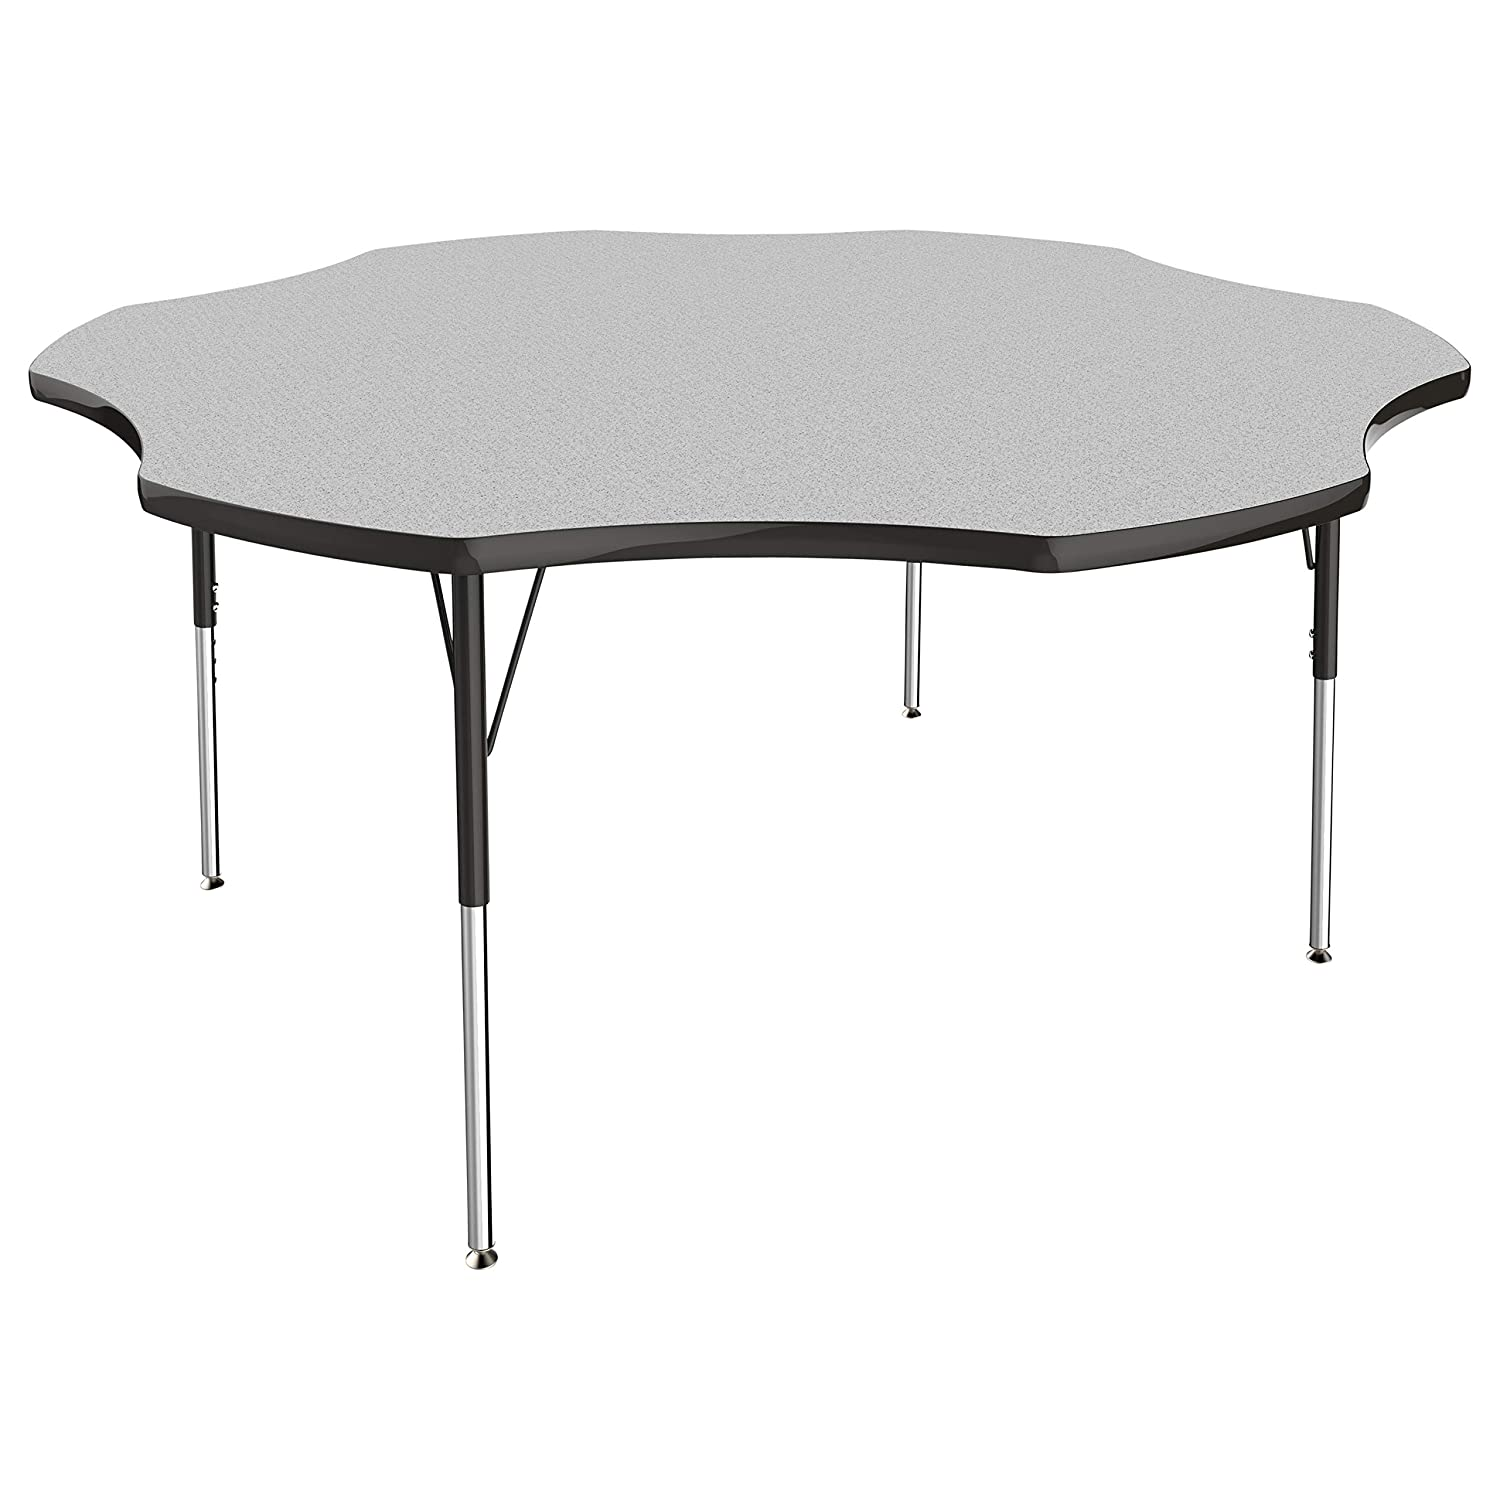 FDP Flower Activity School and Office Table (60 inch), Standard Legs with Swivel Glides for Collaborative Seating Environments, Adjustable Height 19-30 inches - Gray Top and Black Edge